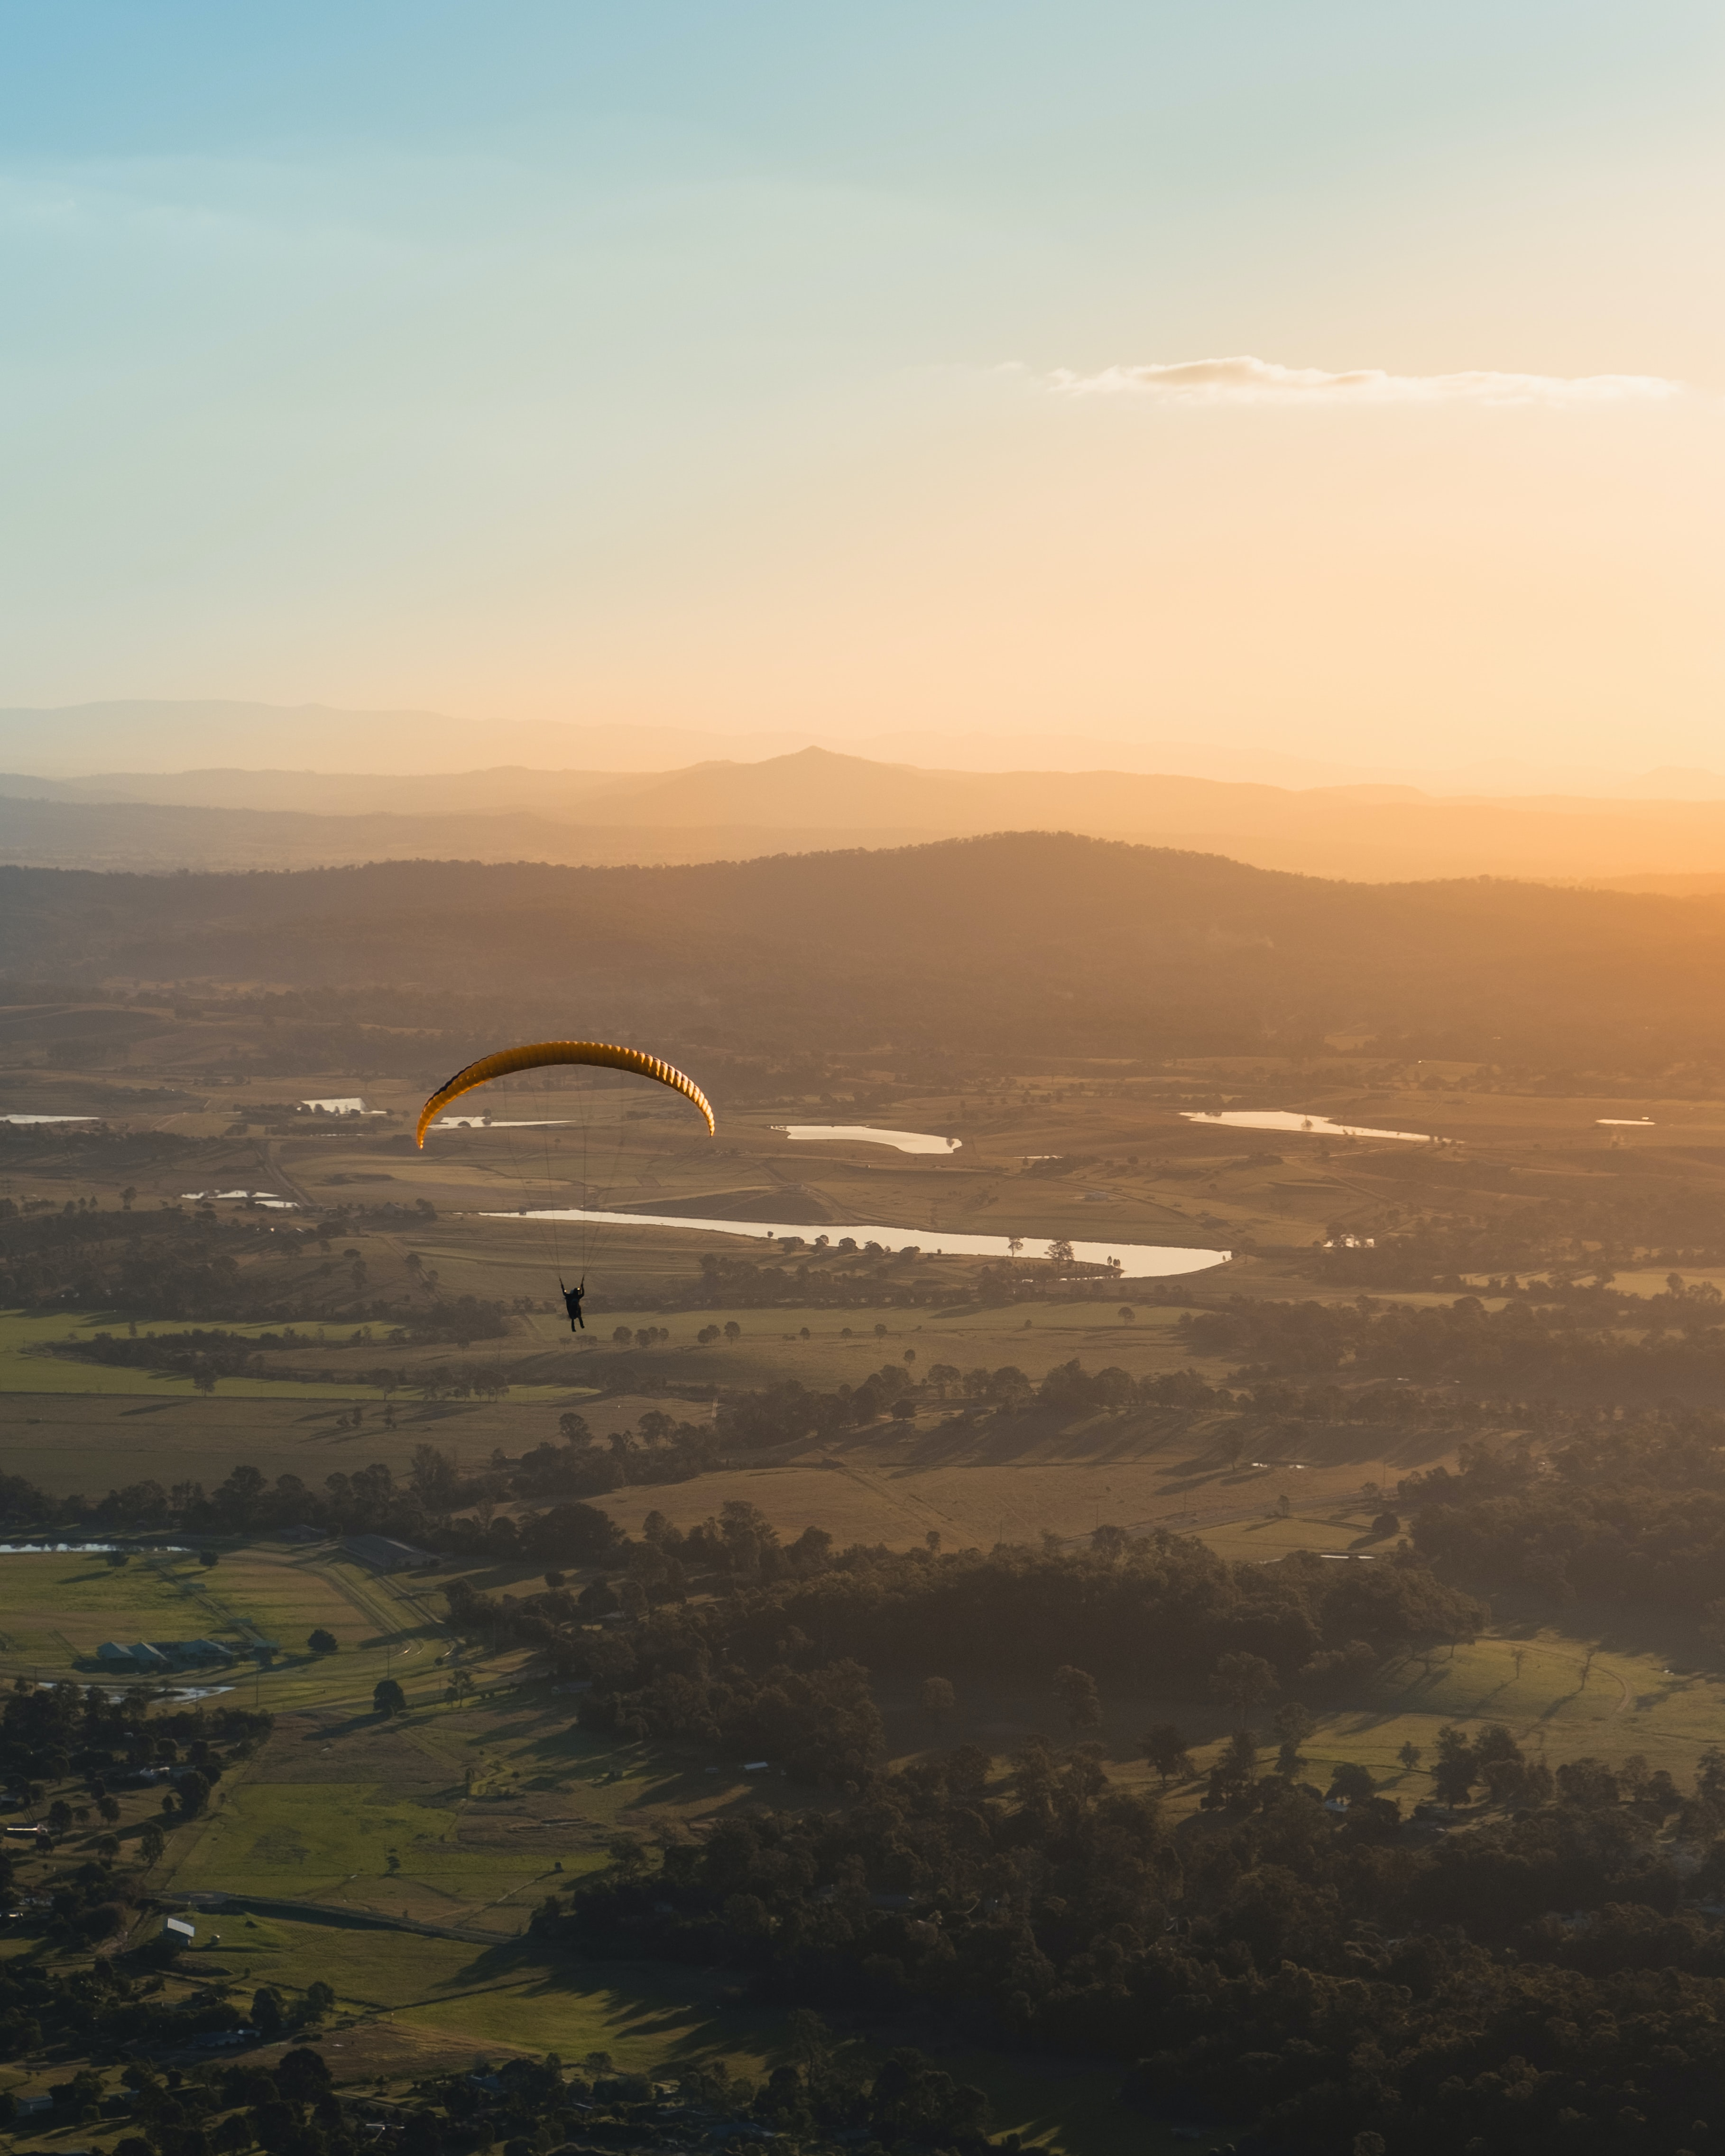 The aerial view of the gold coast and a person coming down in a parachute to it